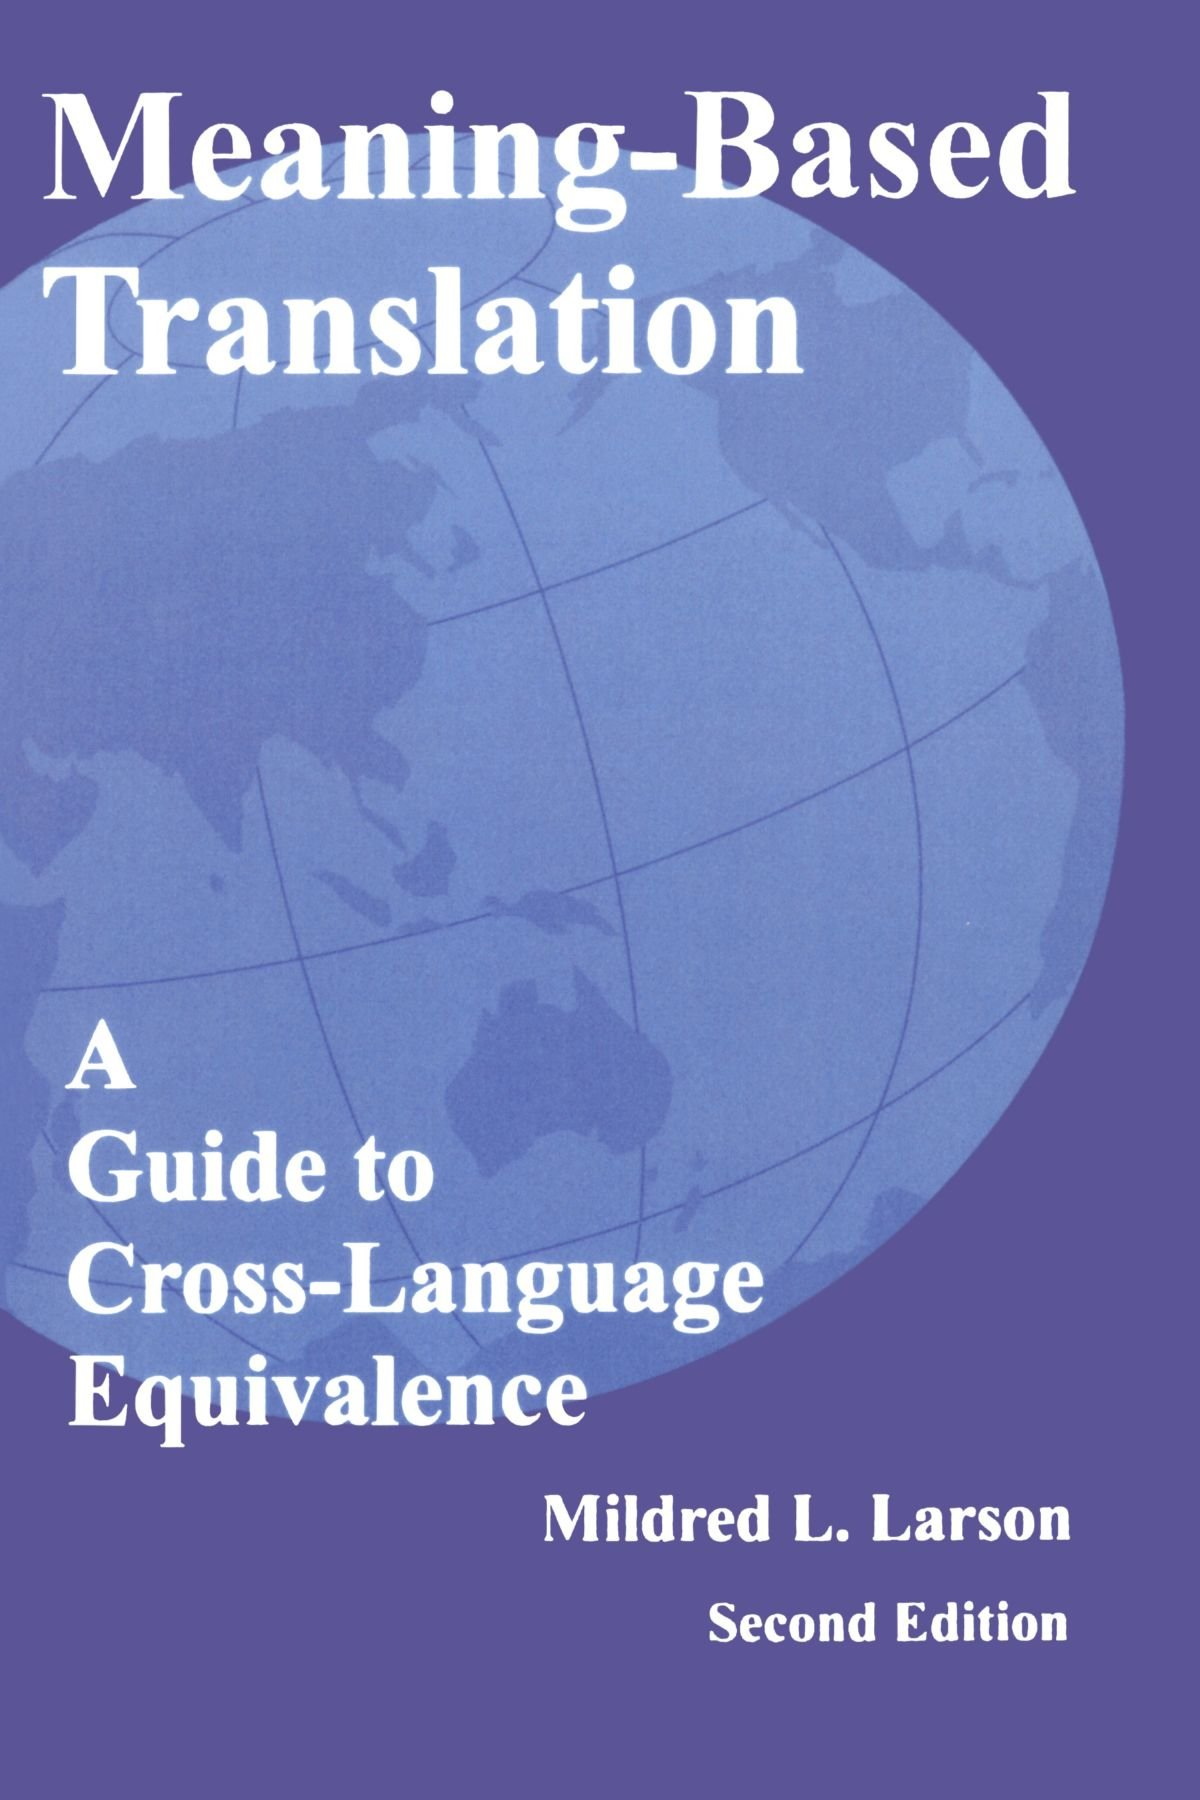 Meaning-Based Translation: A Guide to Cross-Language Equivalence, 2nd edition by UPA